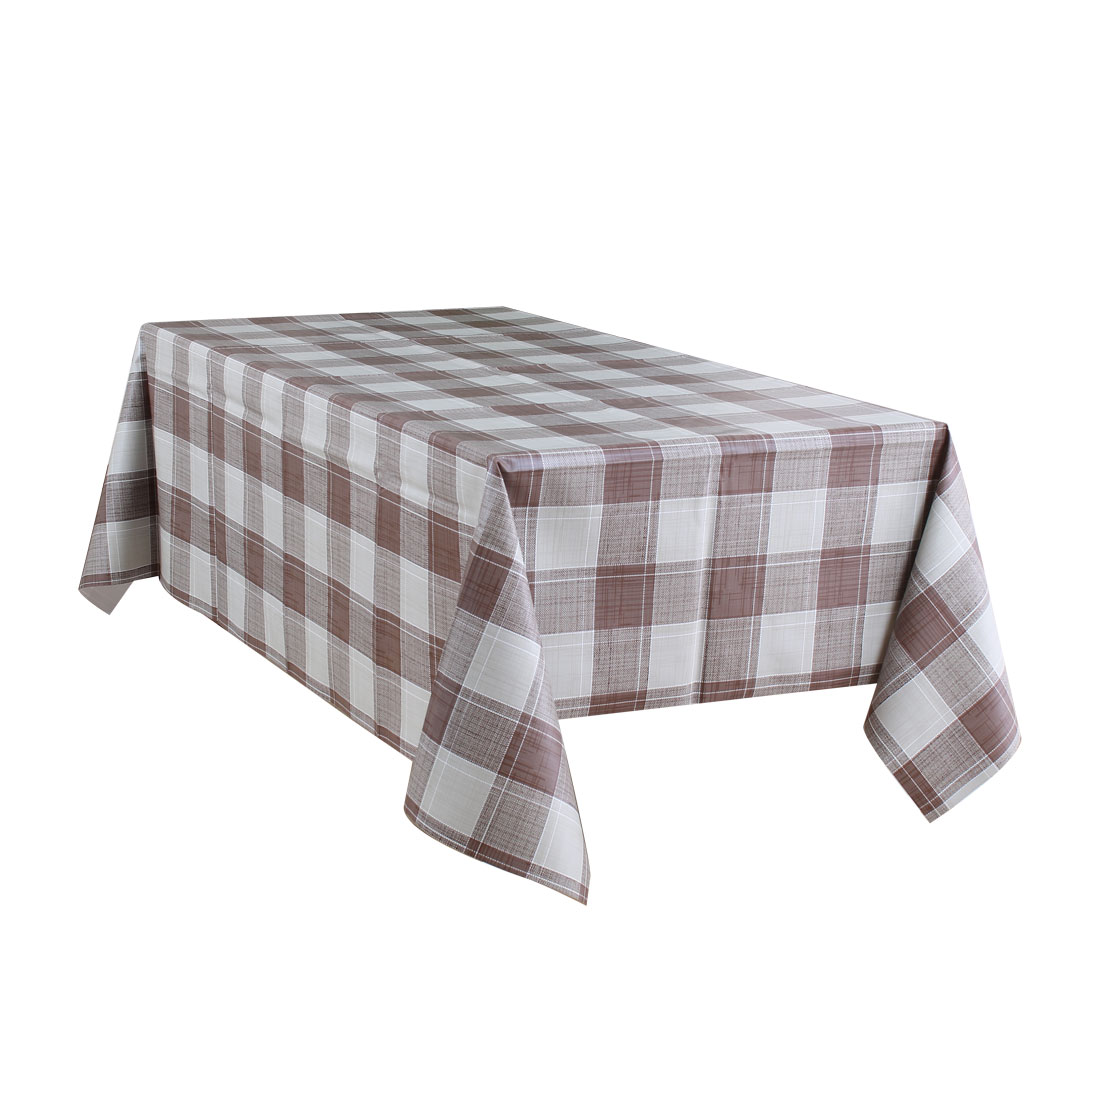 """Tablecloth PVC Rectangle Table Cloth Water Resistant Plaid Pattern 39""""x63"""",#3 - image 7 of 7"""